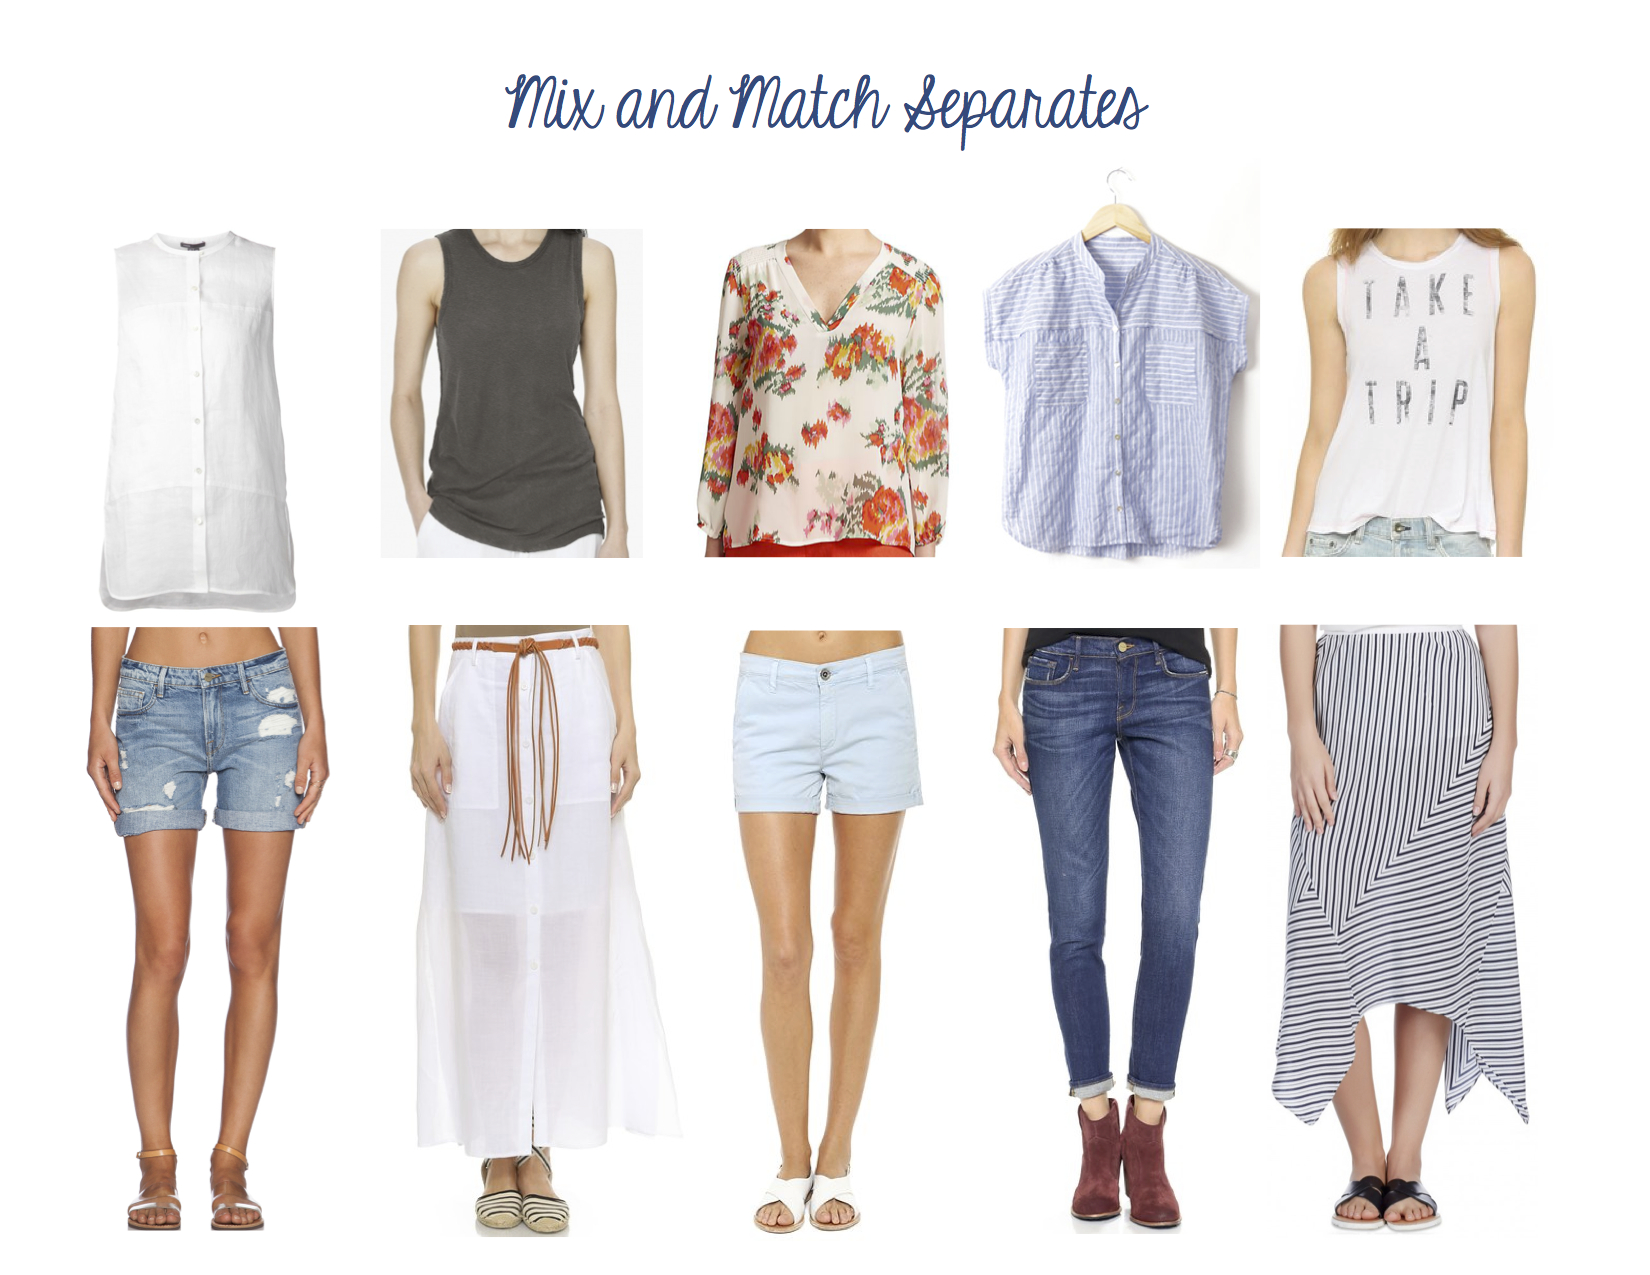 """Top Row from L to R: Vince Linen Sleeveless Top, James Perse Linen Cotton TomboyTank,Joie Axcel Blouse, California Tailor Tee Shirt, Sundry """"Take a Trip"""" Muscle Tee Bottom Row from L to R: Frame Denim Le Skinny de Jeanne Short, Theory Tylary Skirt,AG Jeans Tristan Short, Frame Le Garçon Jean, Joie Eleta Skirt"""